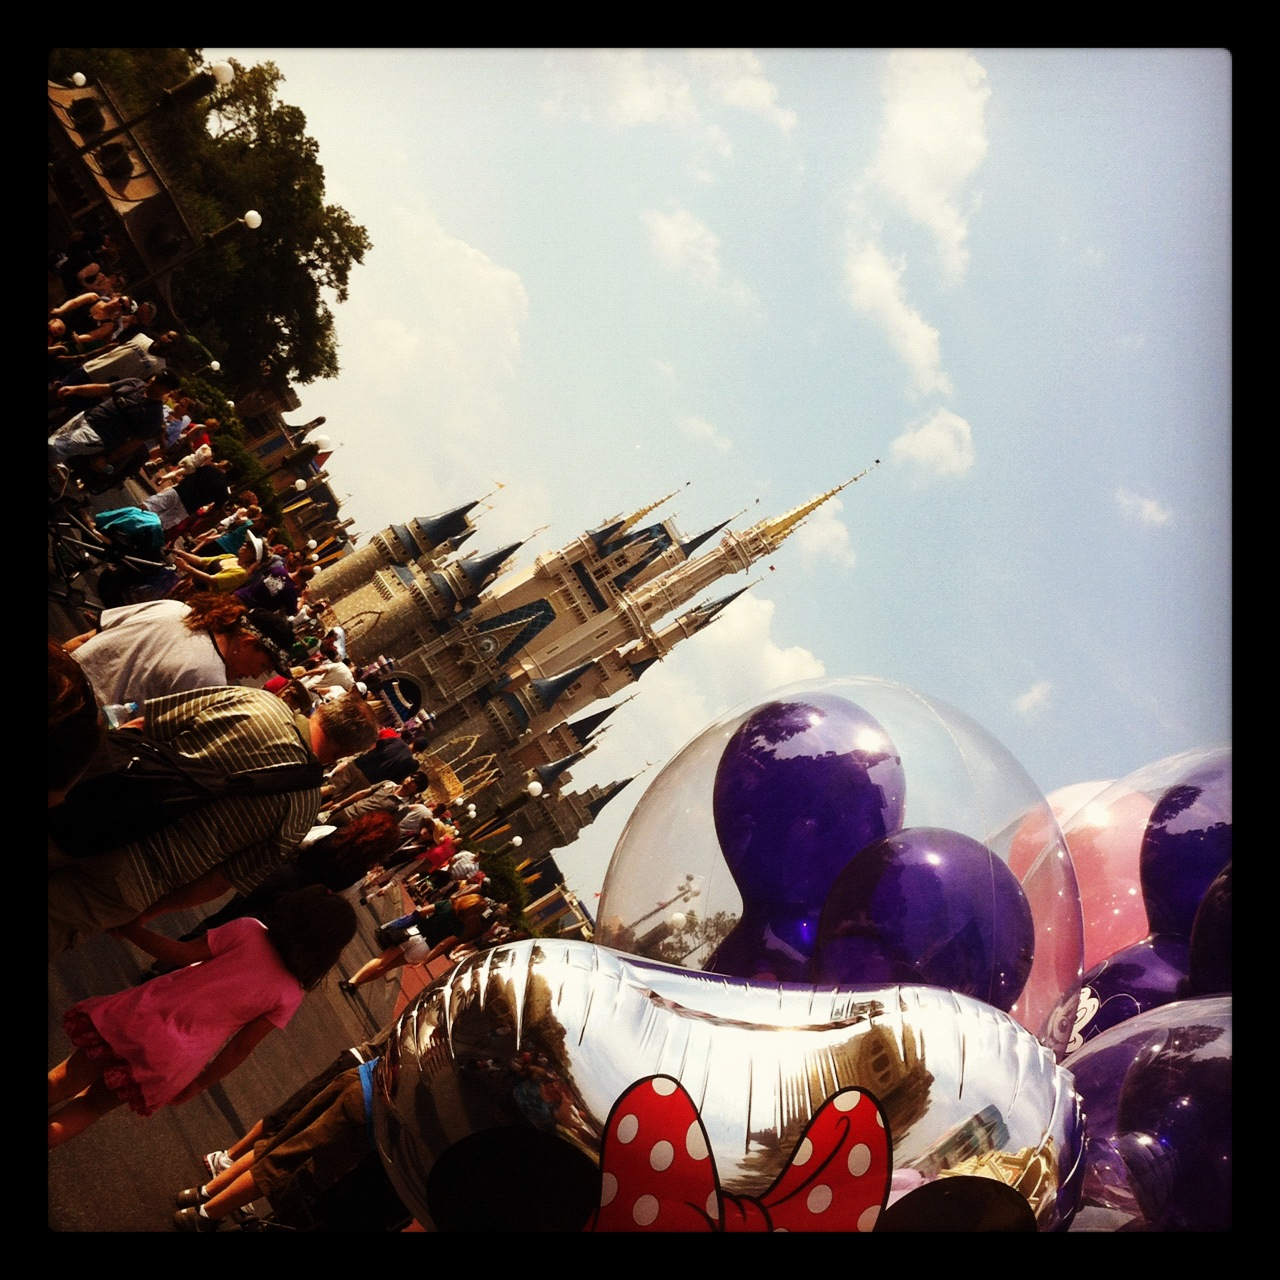 Happiest Place on Earth - Magic Kingdom, Walt Disney World, Fla.